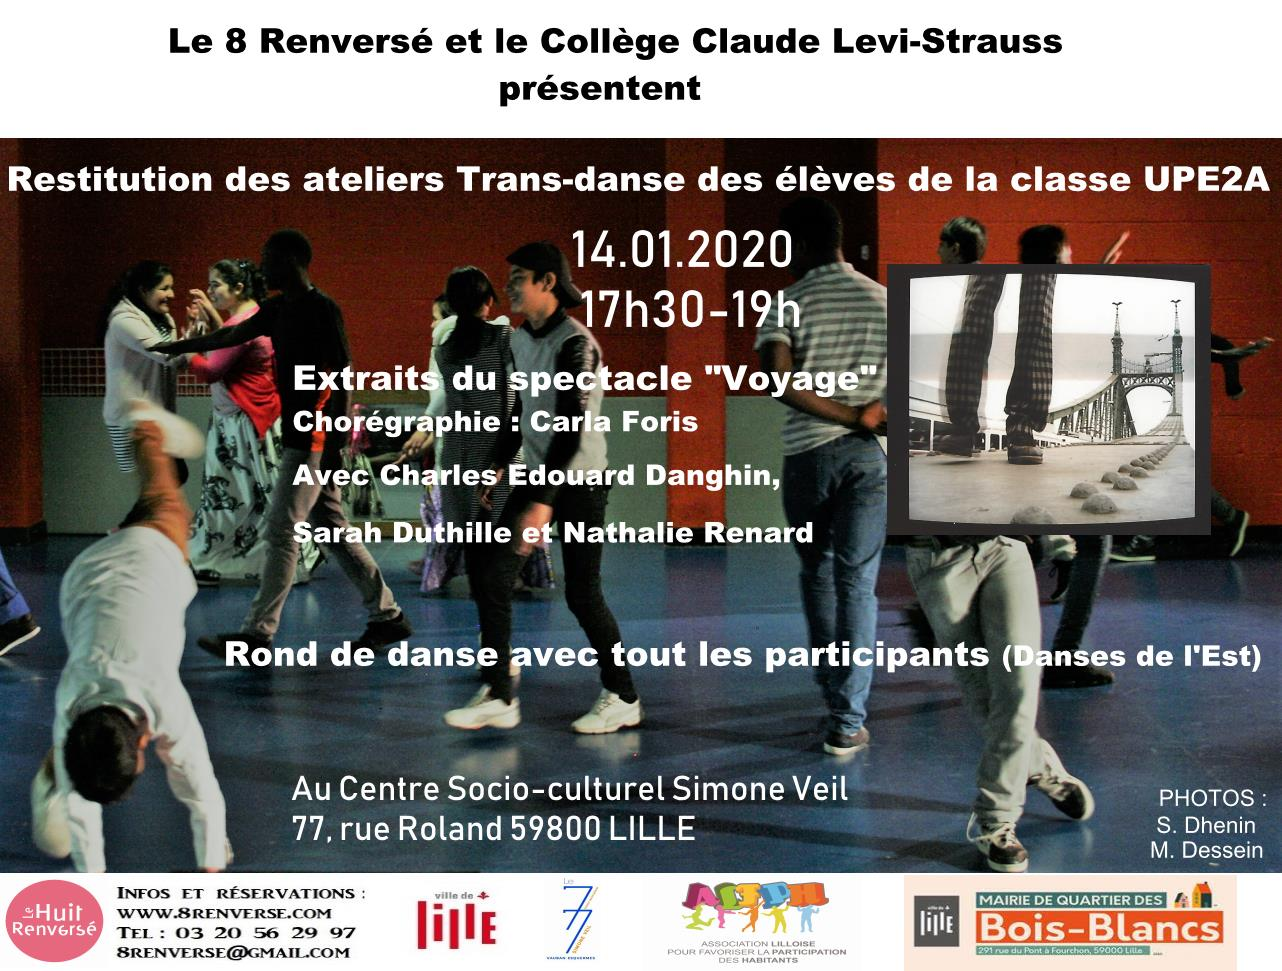 flyers restitution atelier 14.01.2020